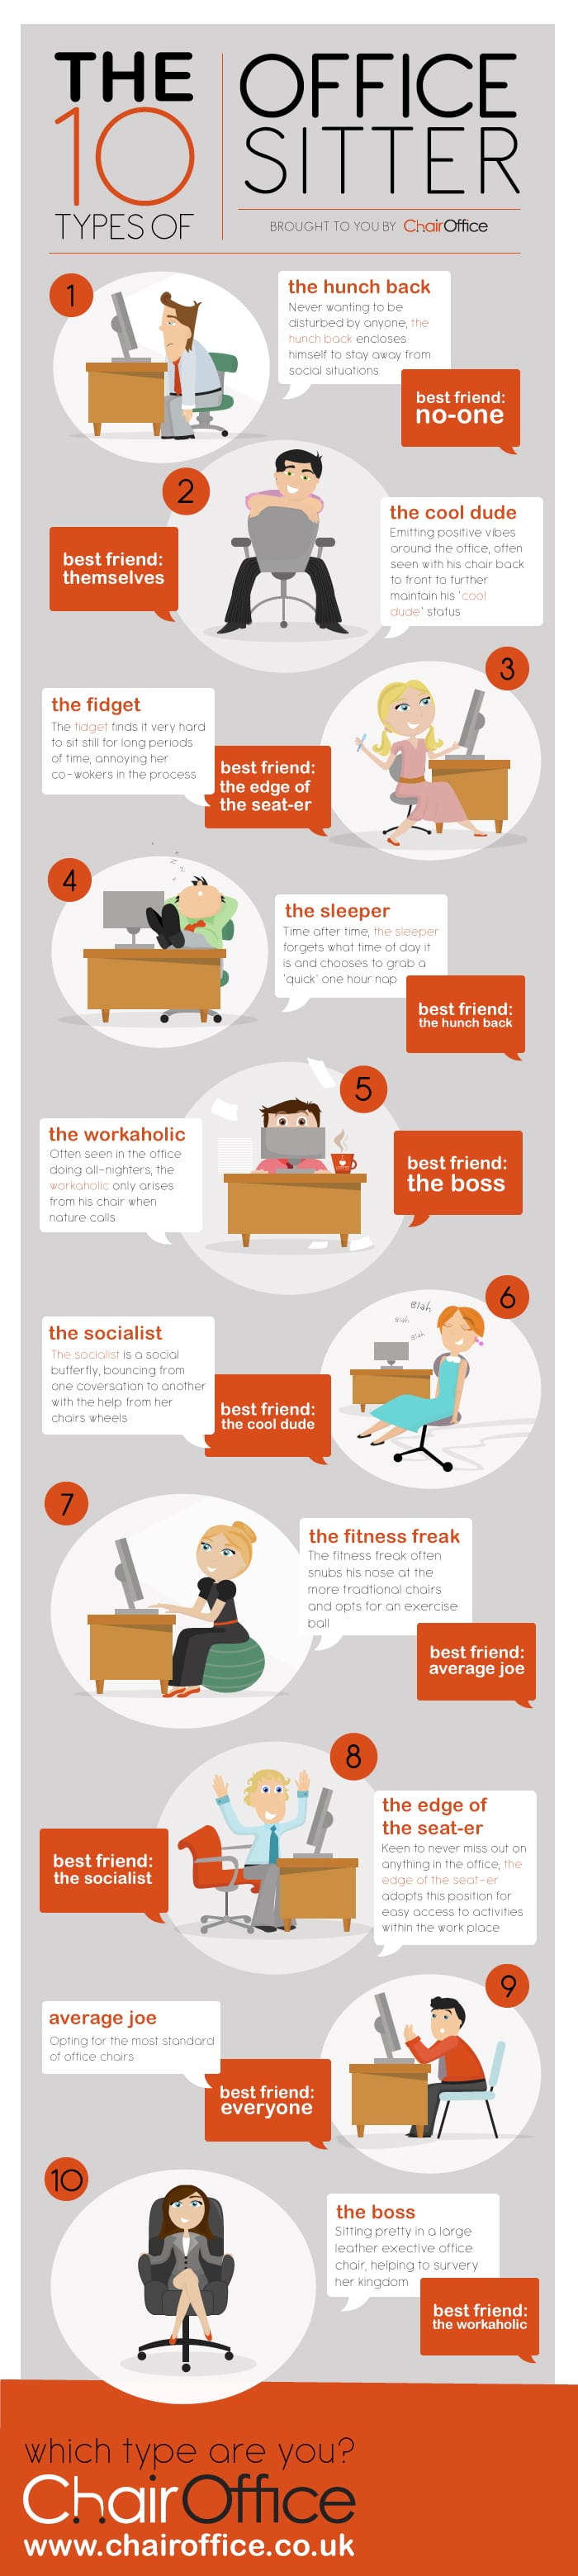 10 Types Of Office Sitters – Which One Are You? [Infographic]